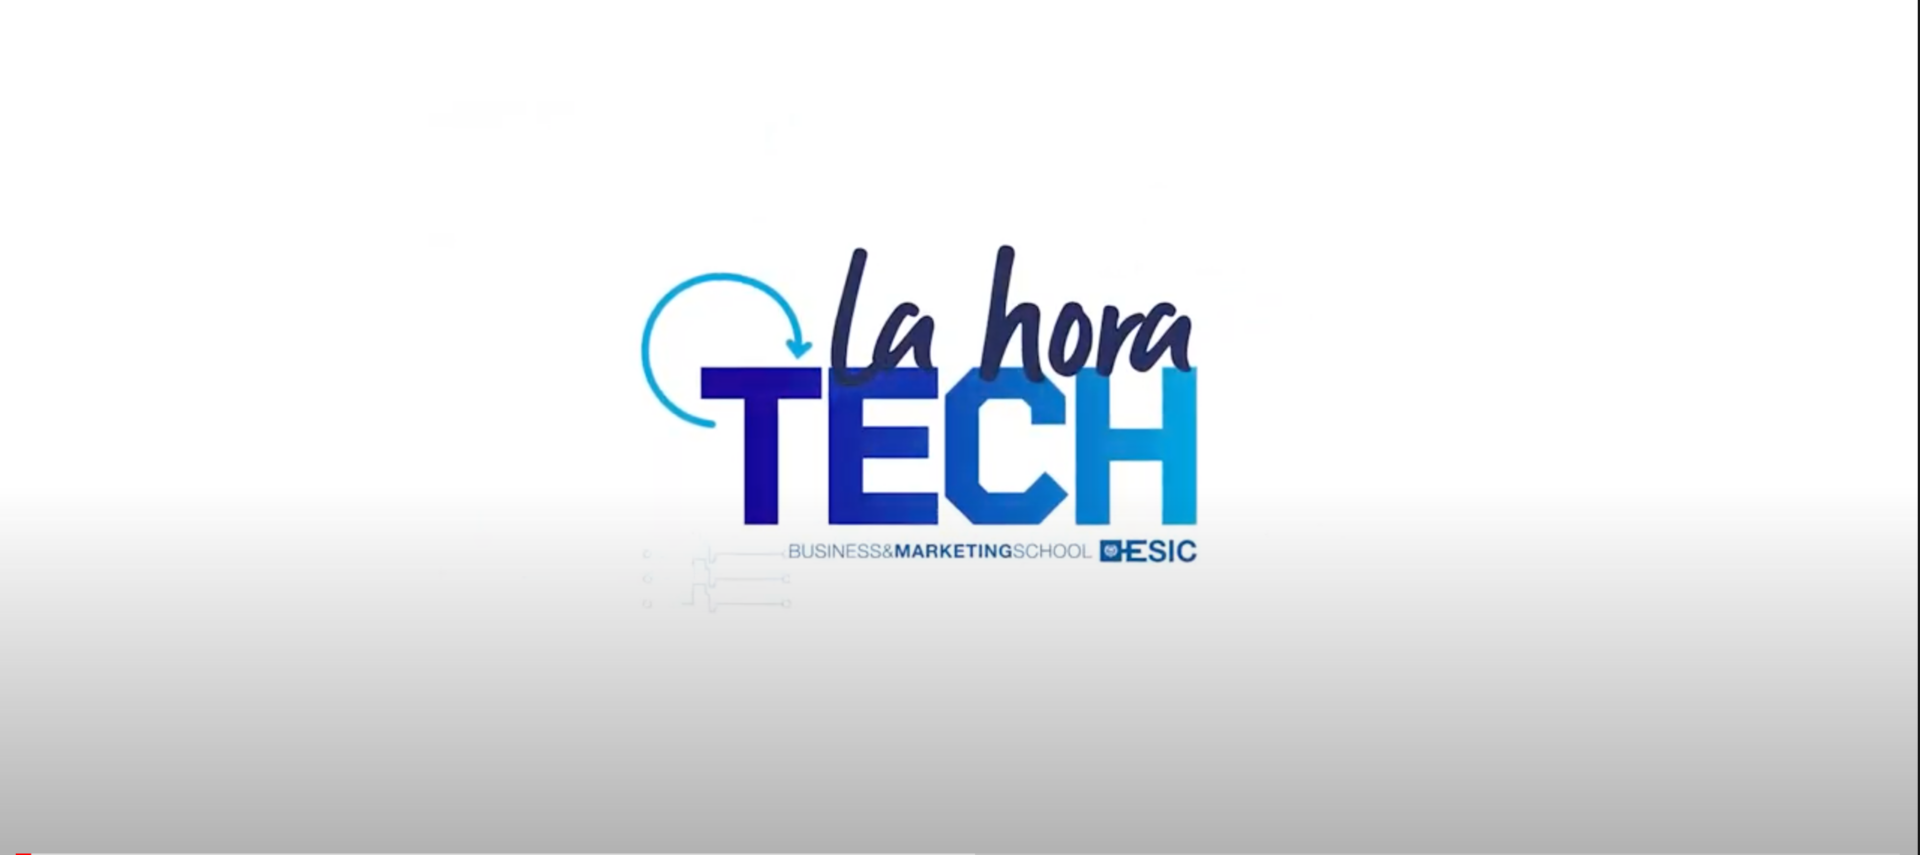 Deep Fakes, Lahoratech, ESIC